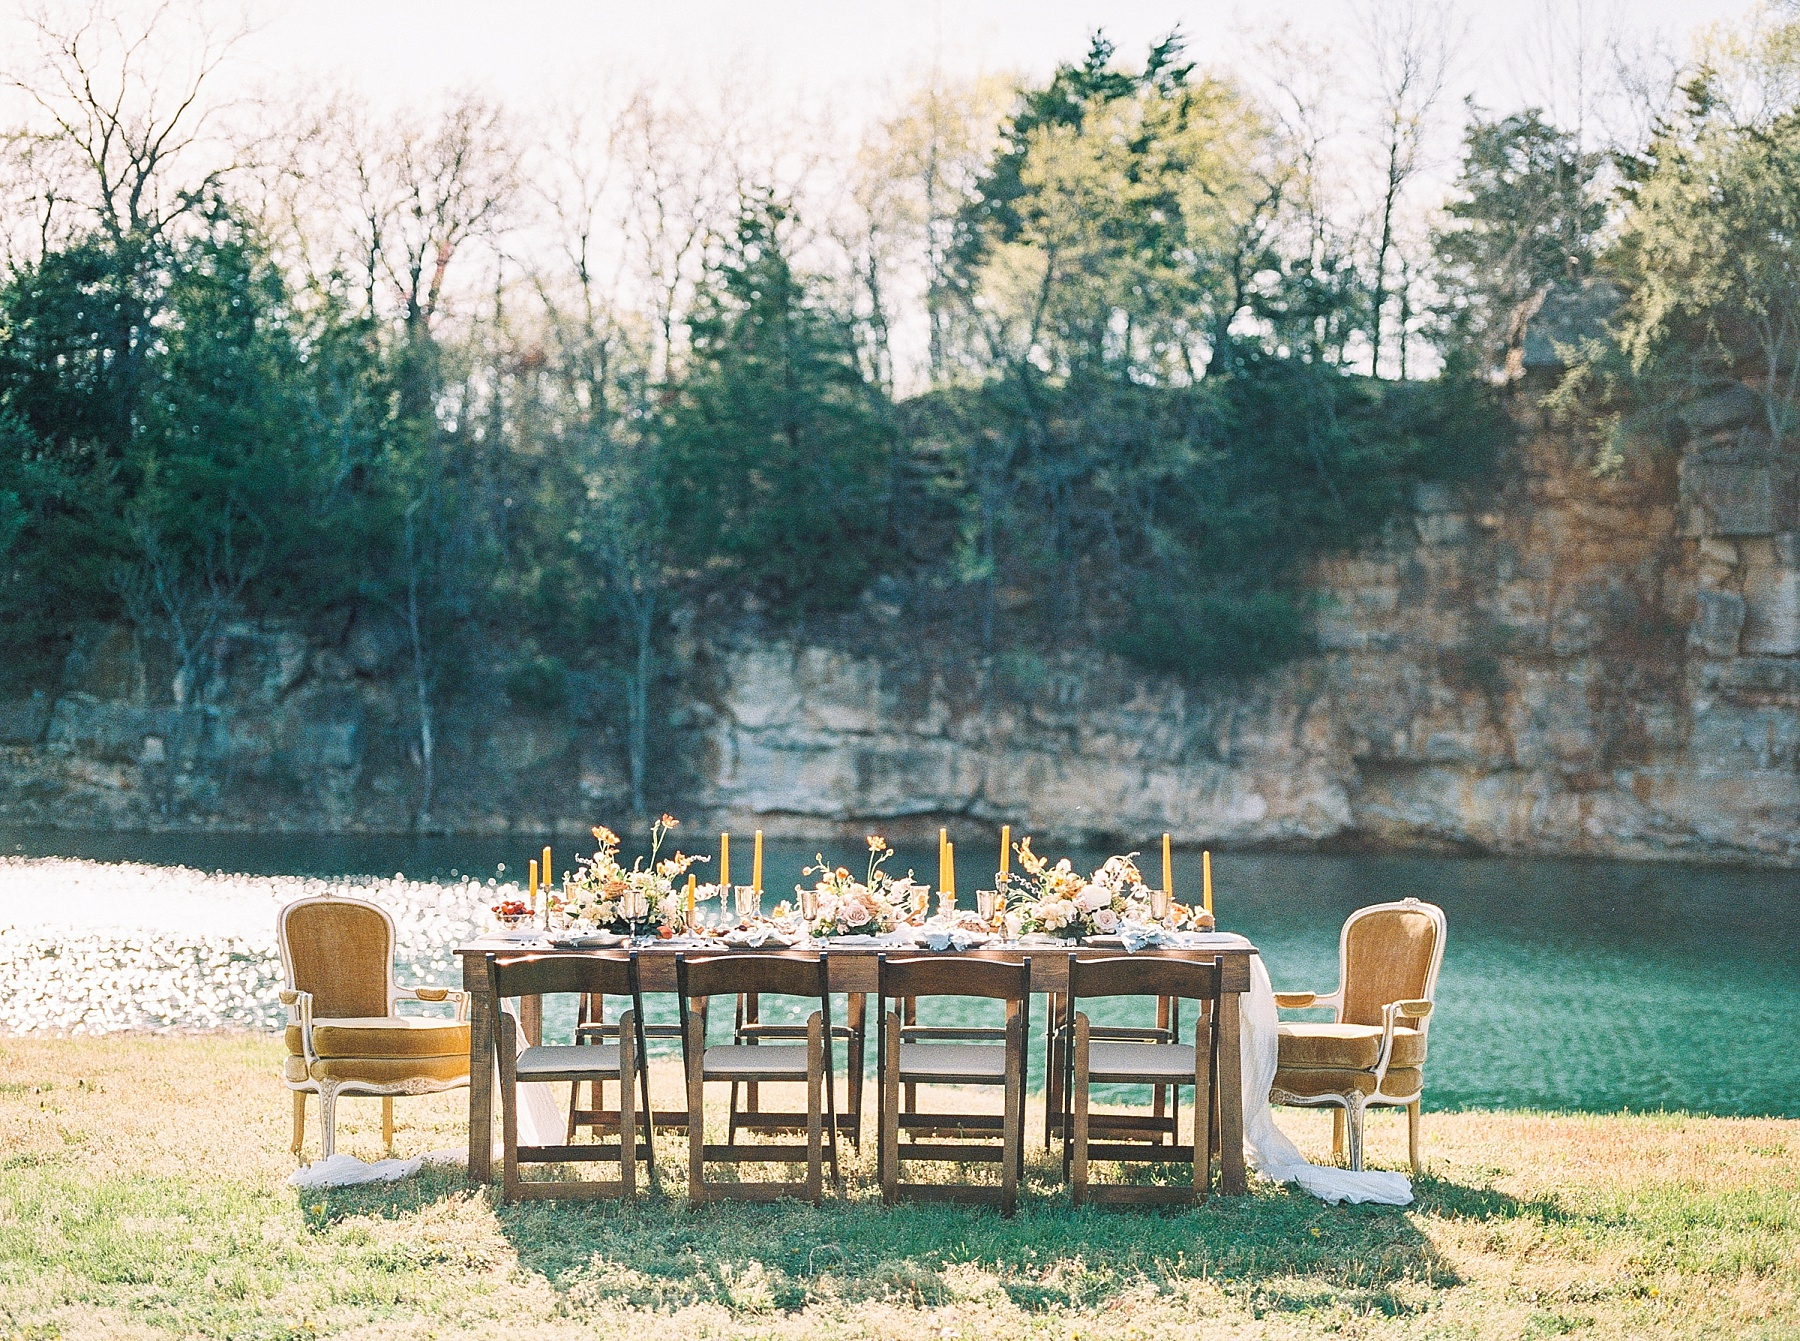 Intimate Spanish and French Inspired Destination Wedding with Lakeside Dinner Party at Dusk at Wildcliff by Kelsi Kliethermes Photography Best Missouri and Maui Wedding Photographer_0008.jpg